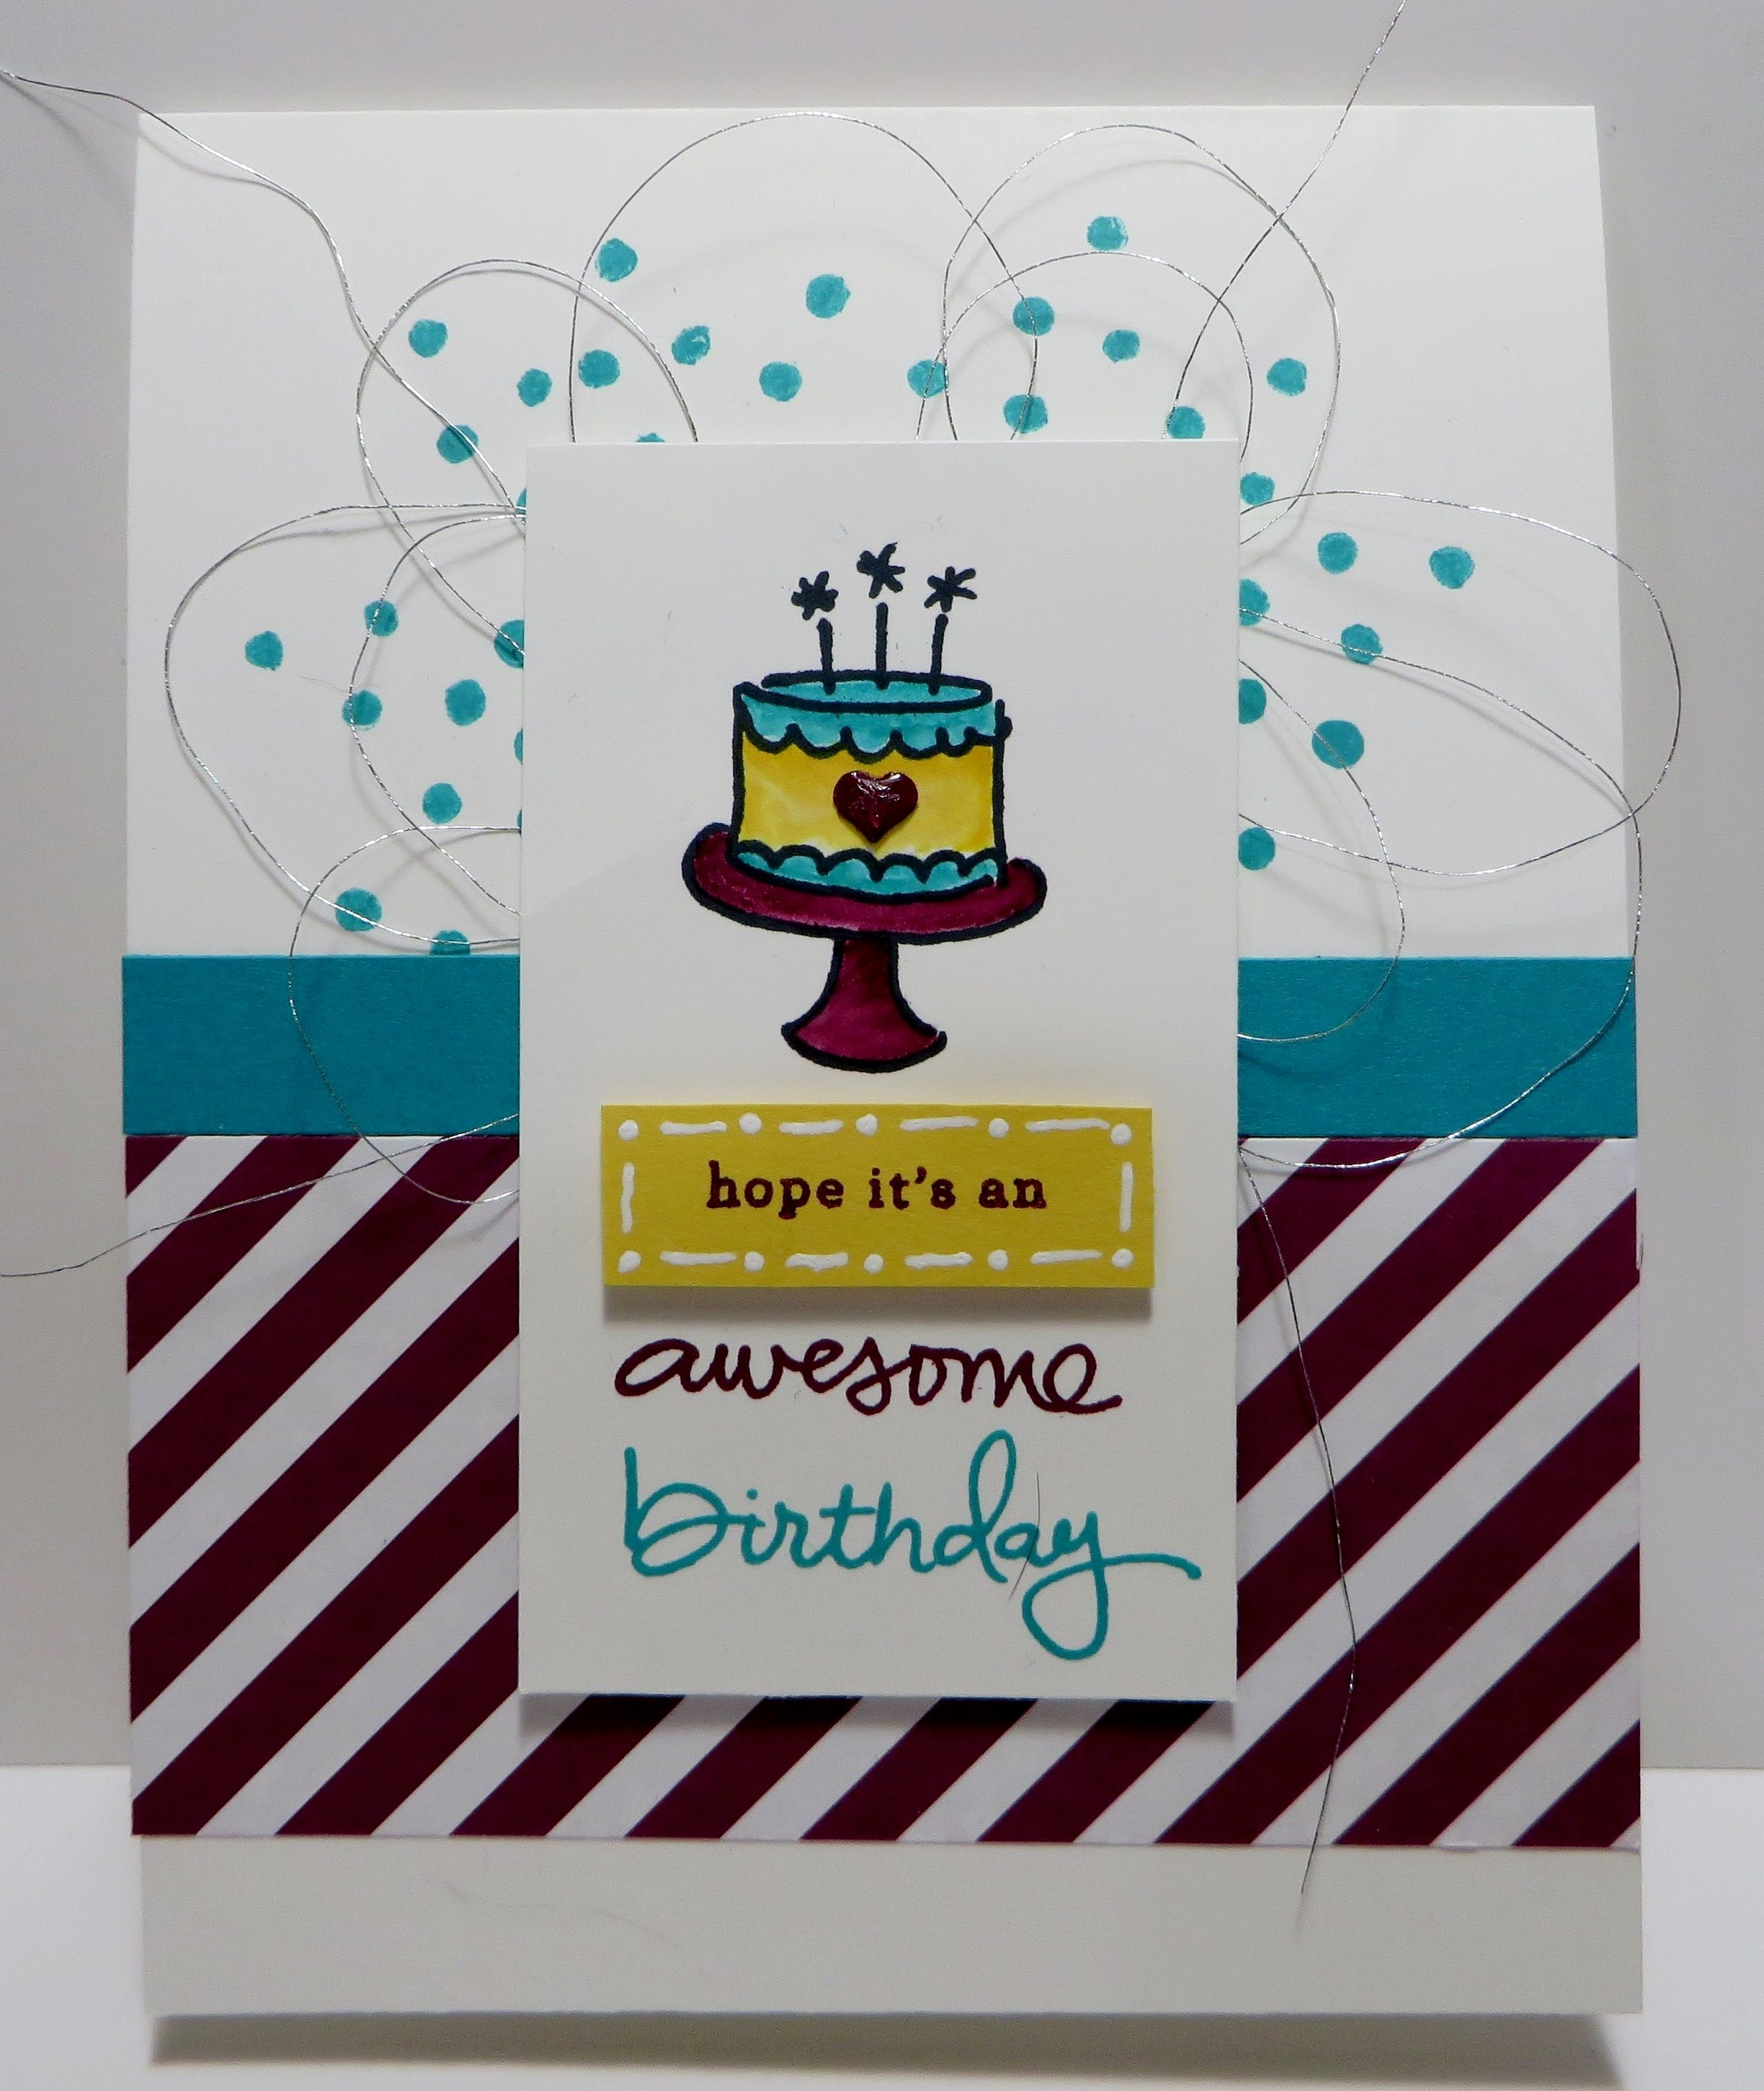 Stampinu up endless birthday wishes card made by lynn gauthier go